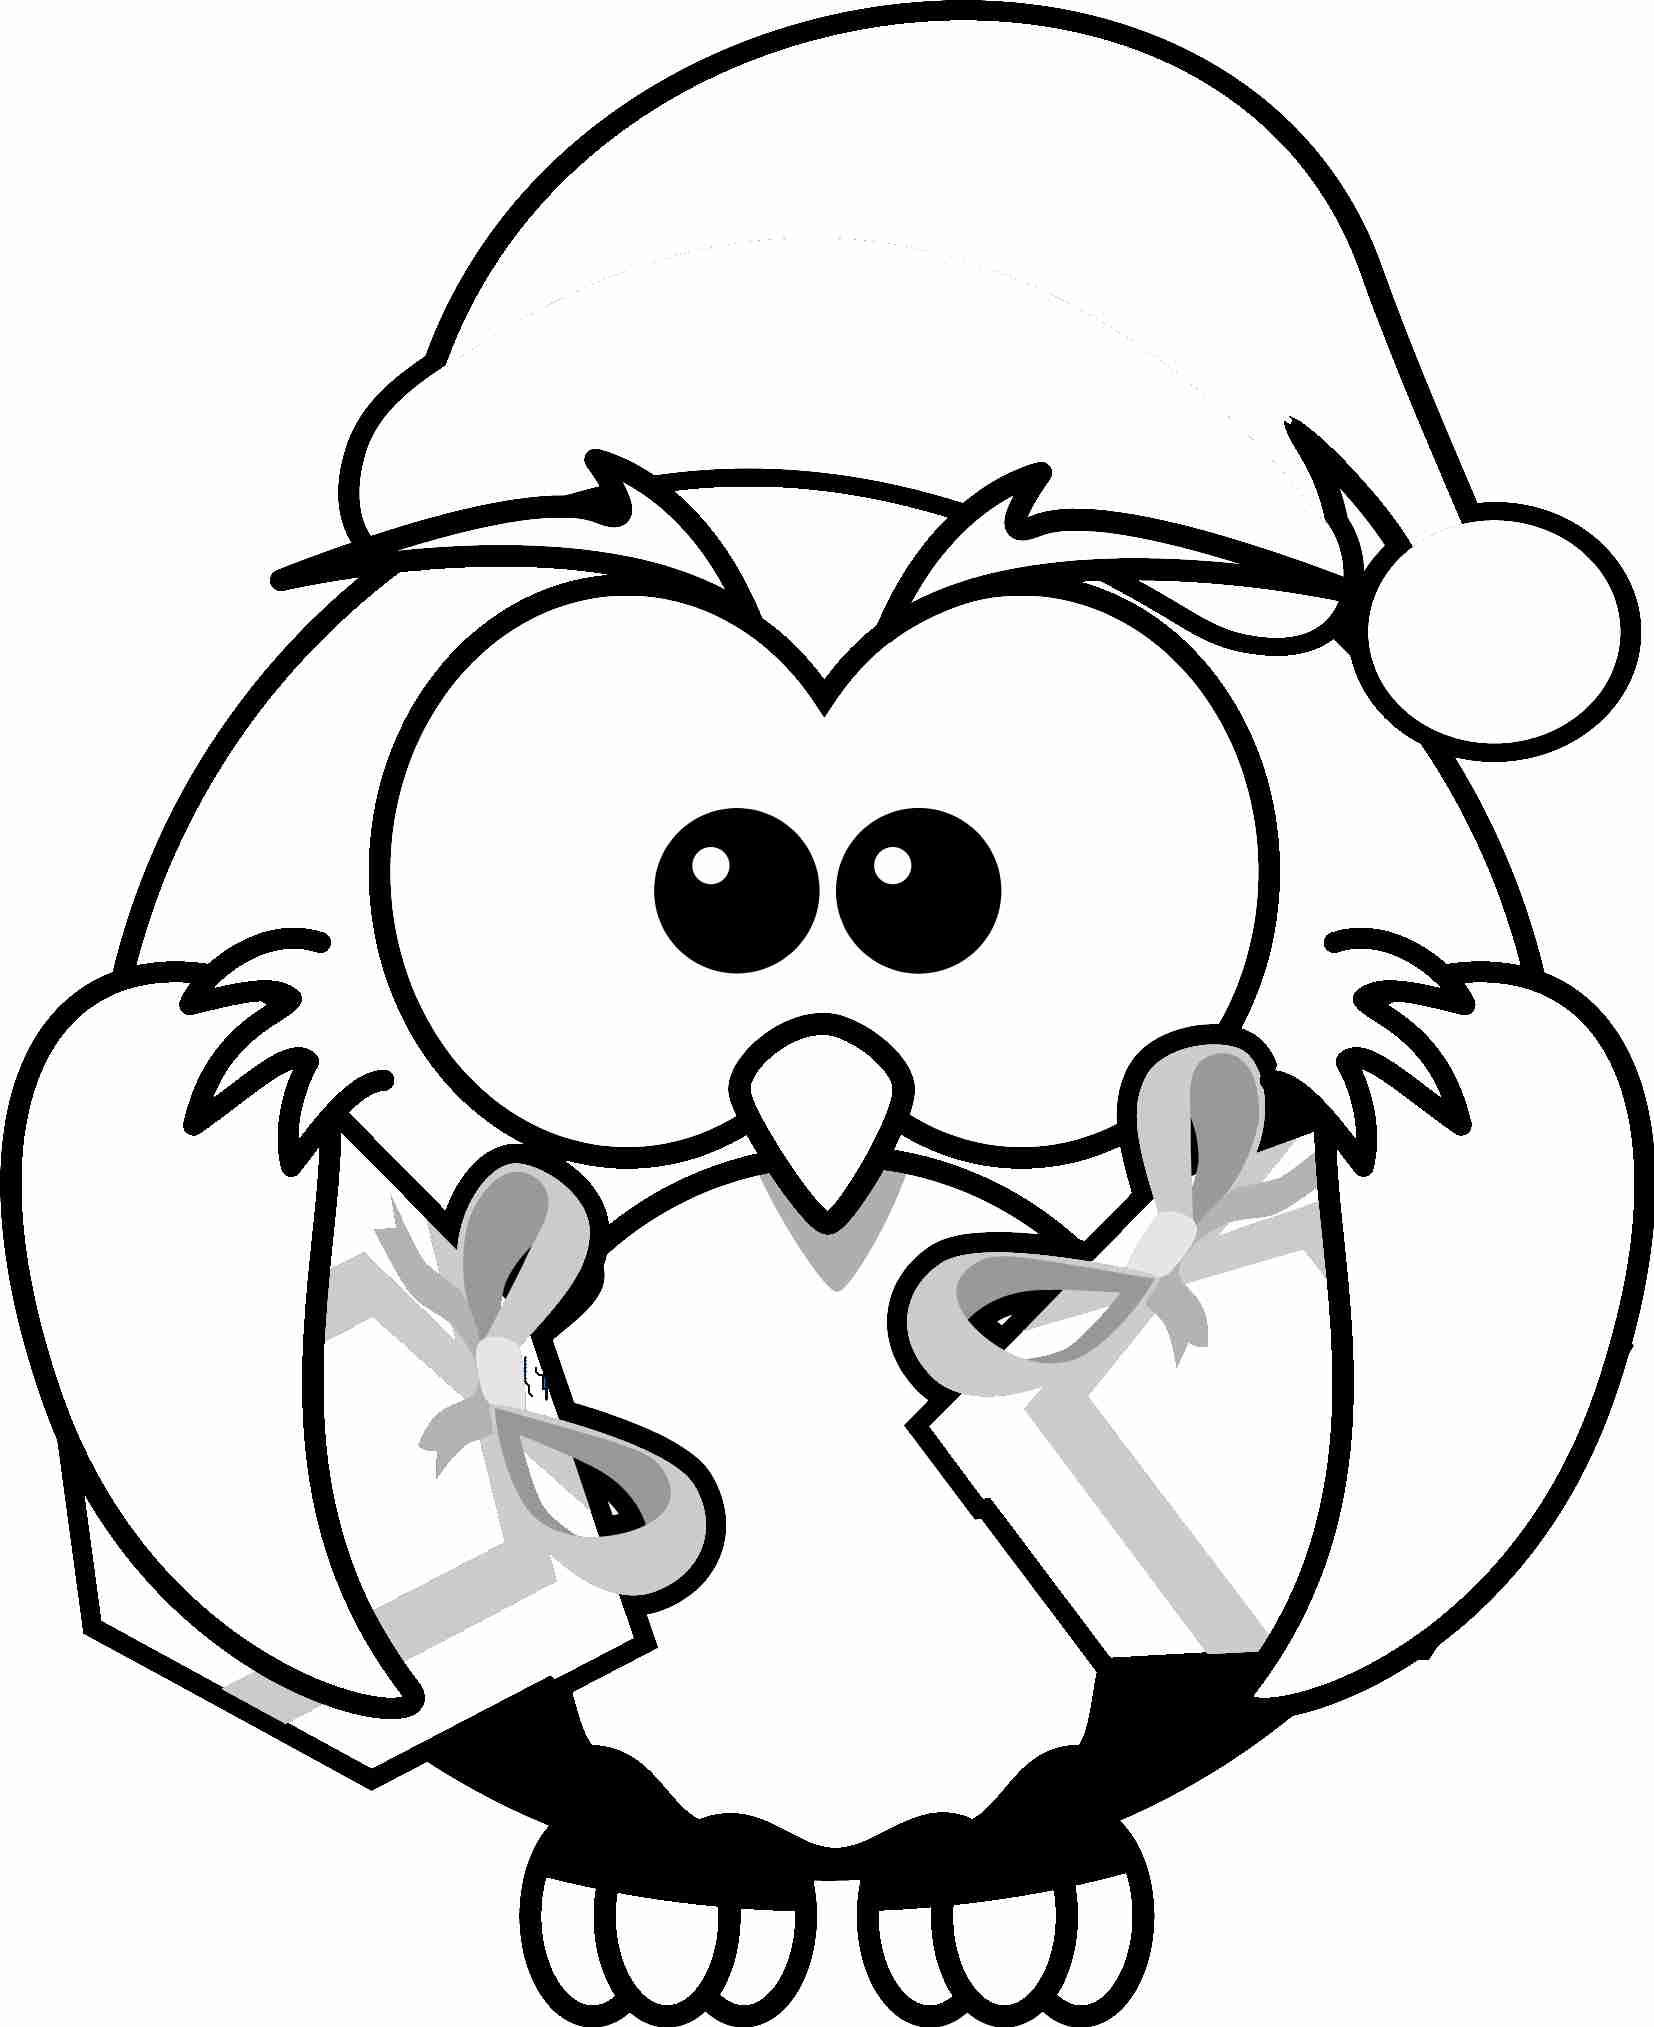 Christmas colouring pages to print out - 1000 Images About Stocking On Pinterest Coloring For Kids And Christmas Snow Globes